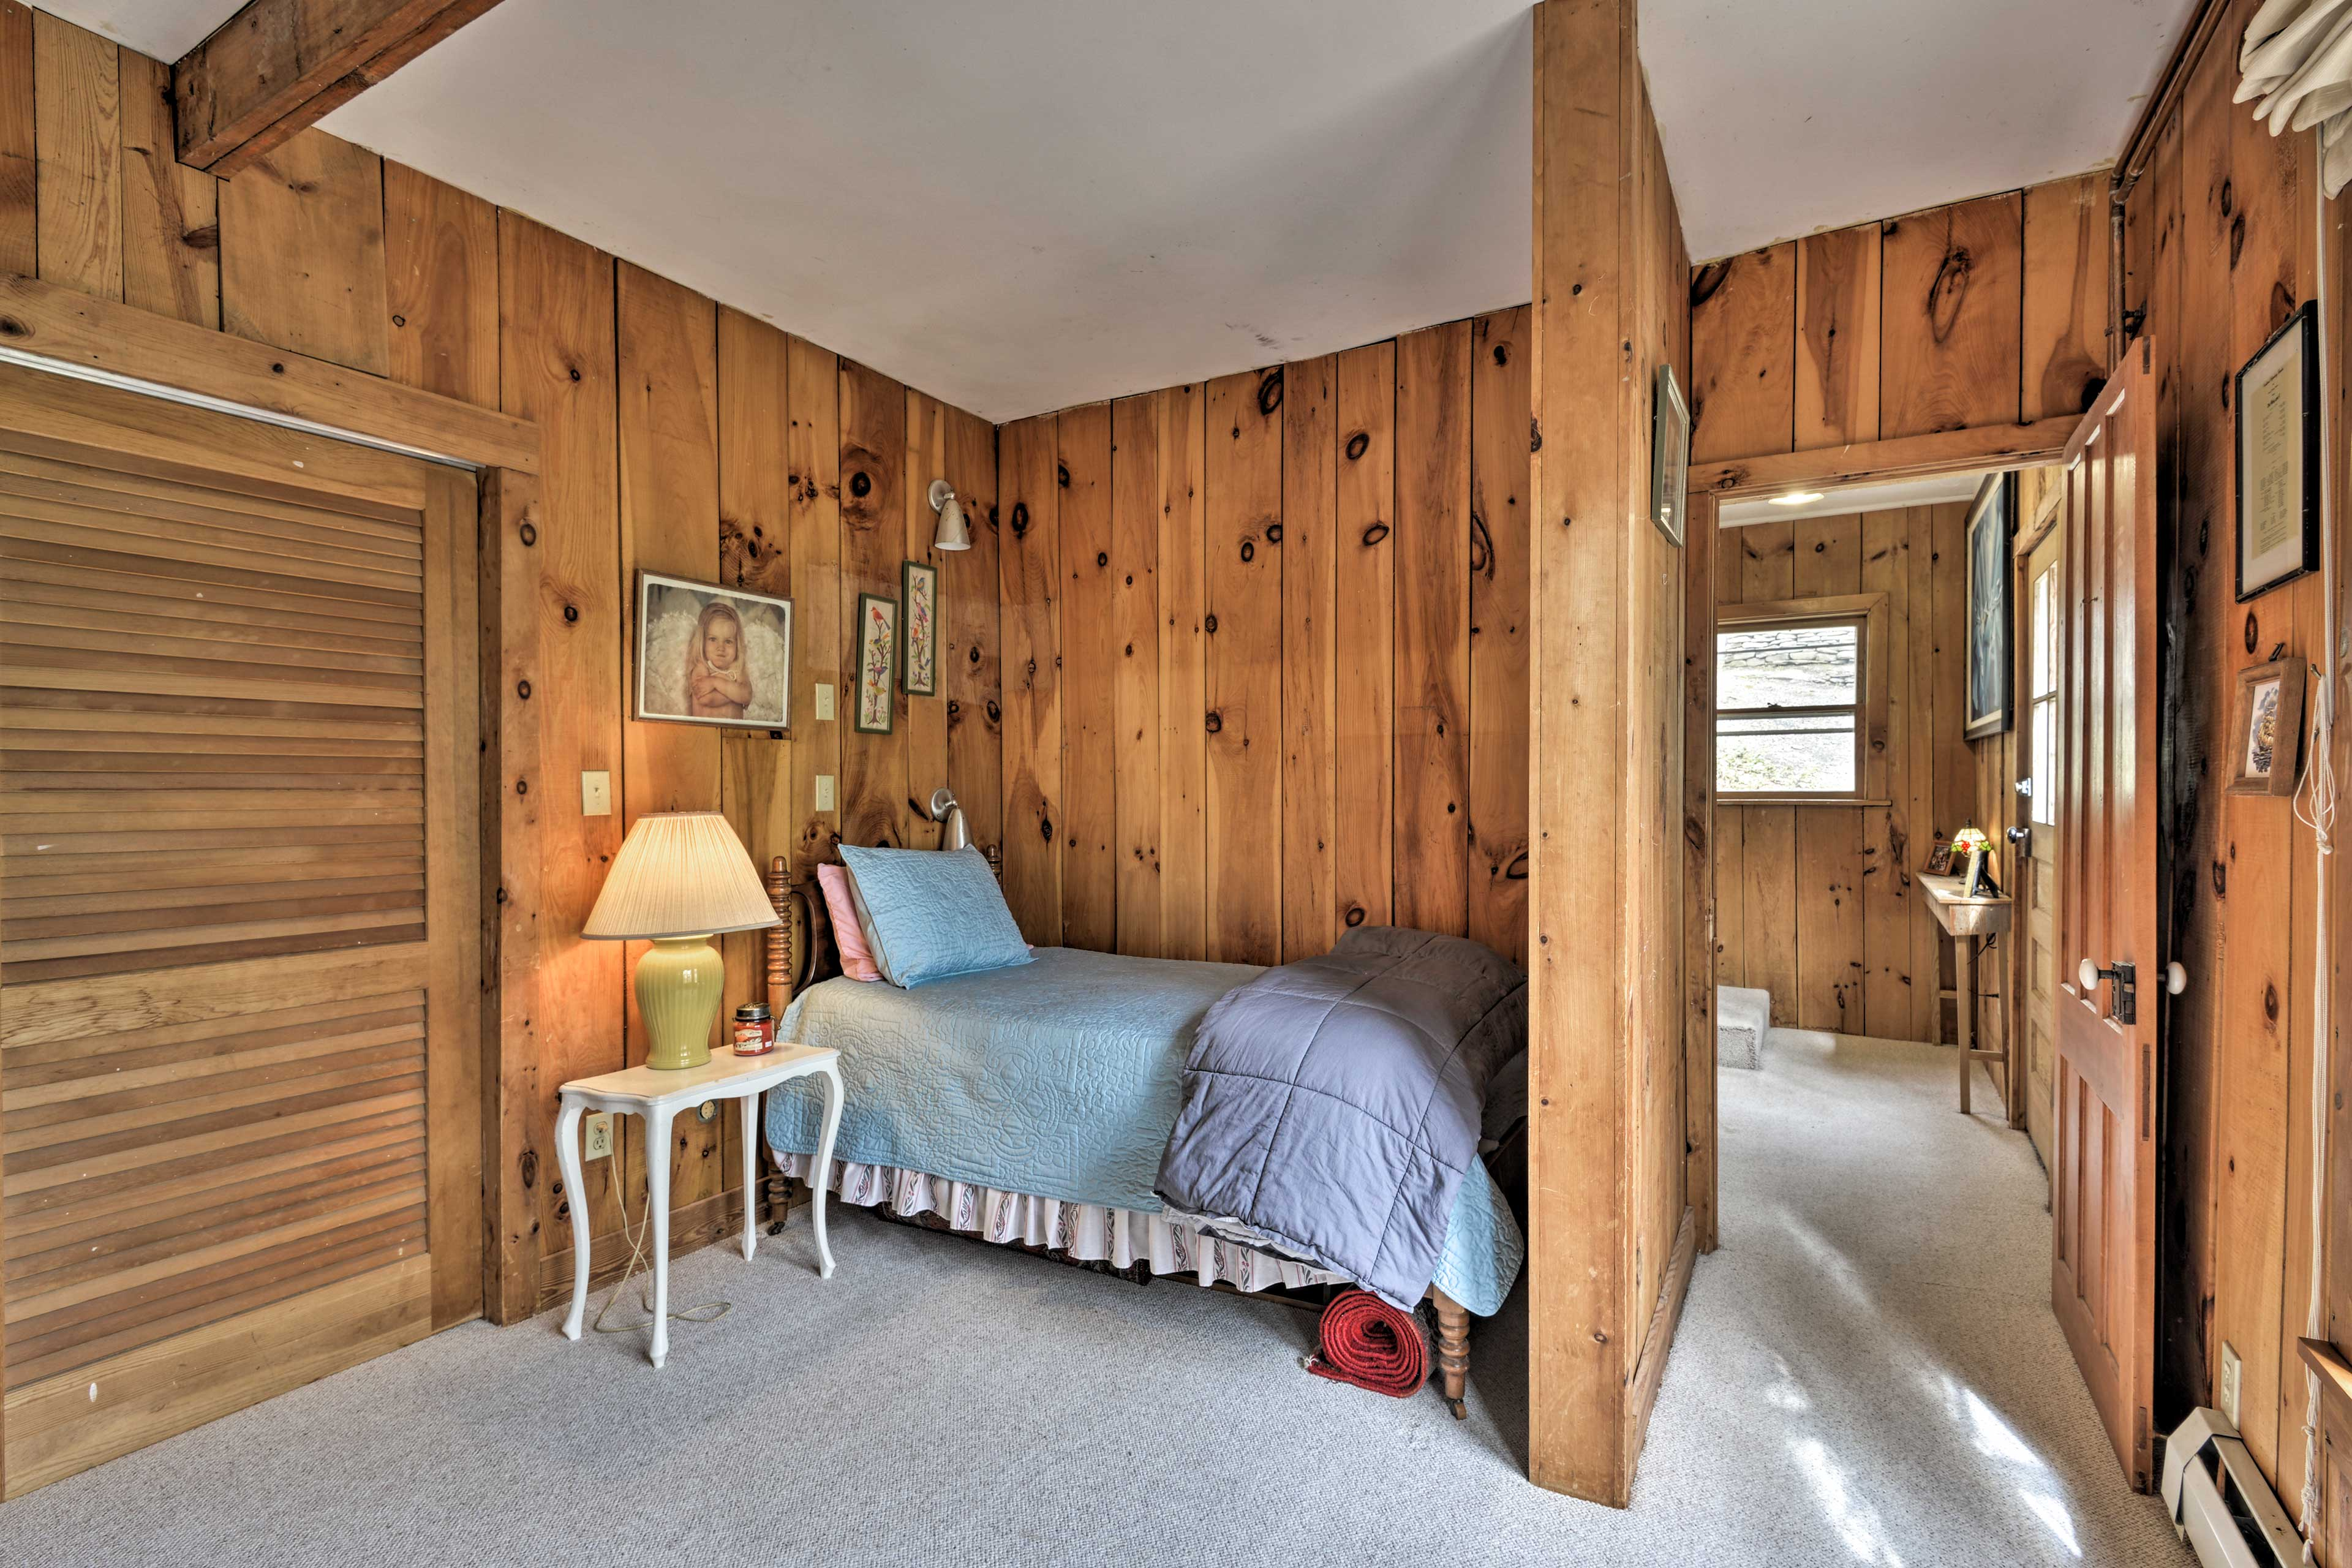 Another of the 3 bedrooms features 2 twin-sized beds.